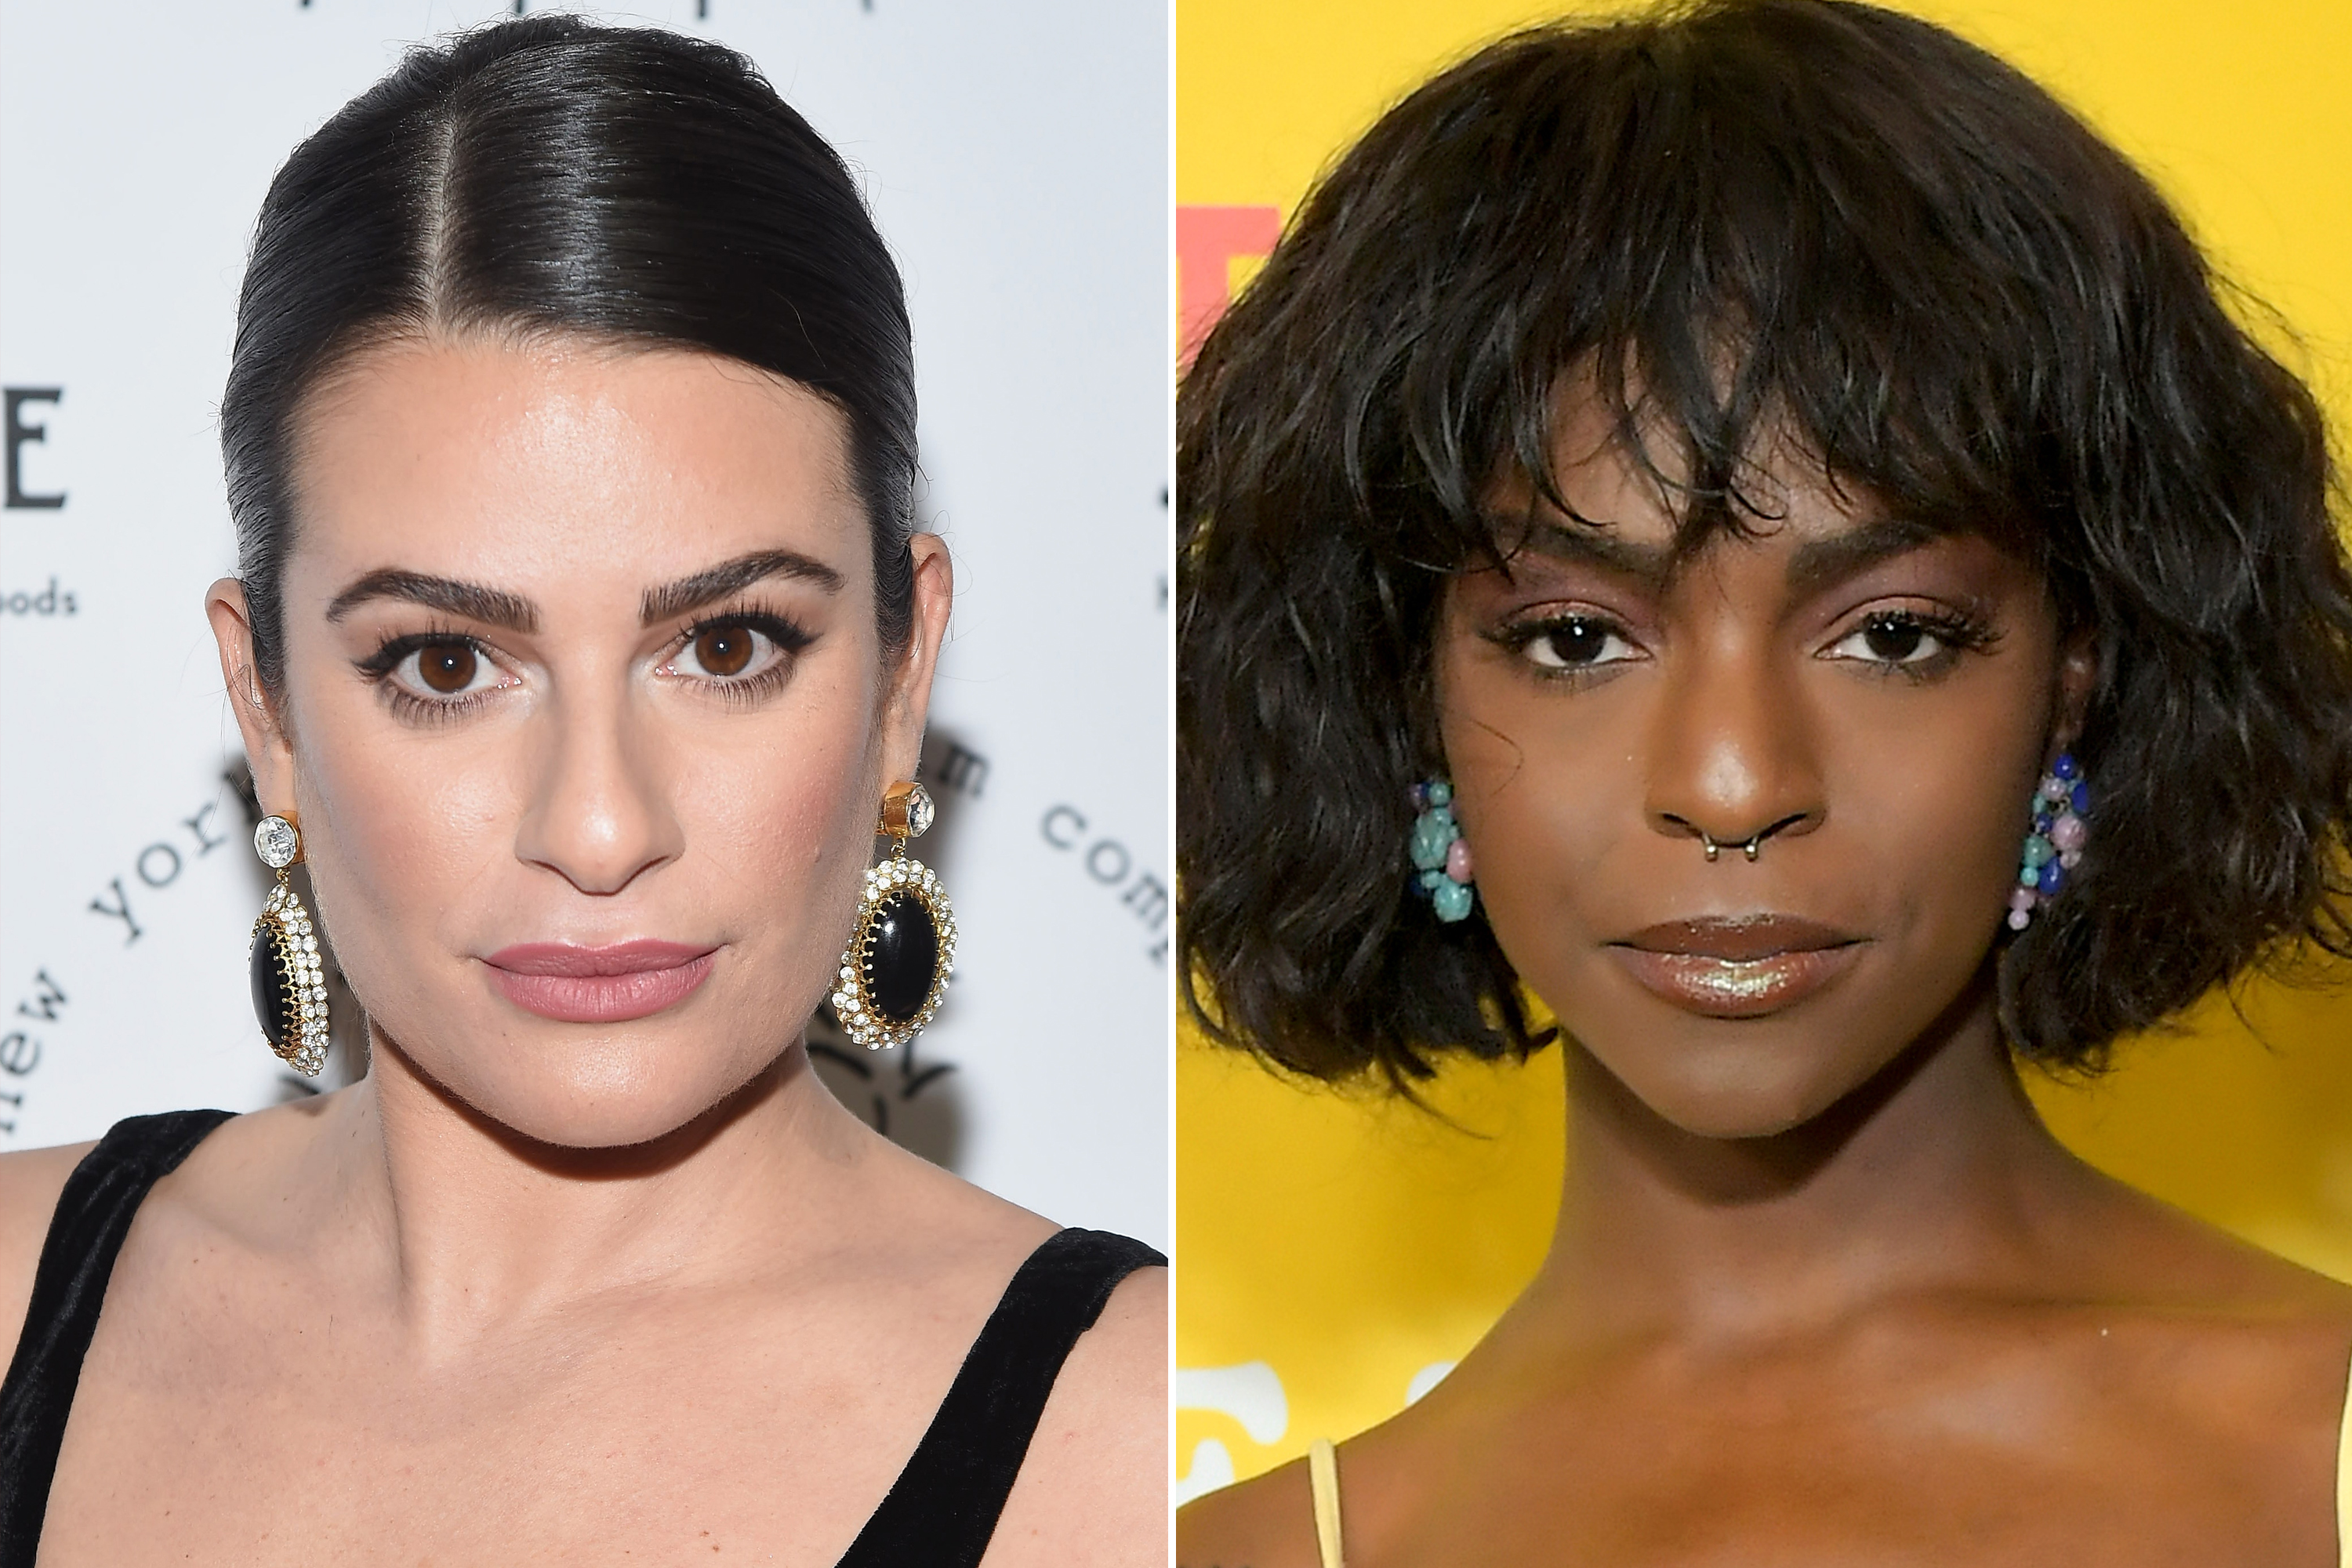 Glee Star Lea Michele Was A Mean Girl From Day One Says Samantha Ware